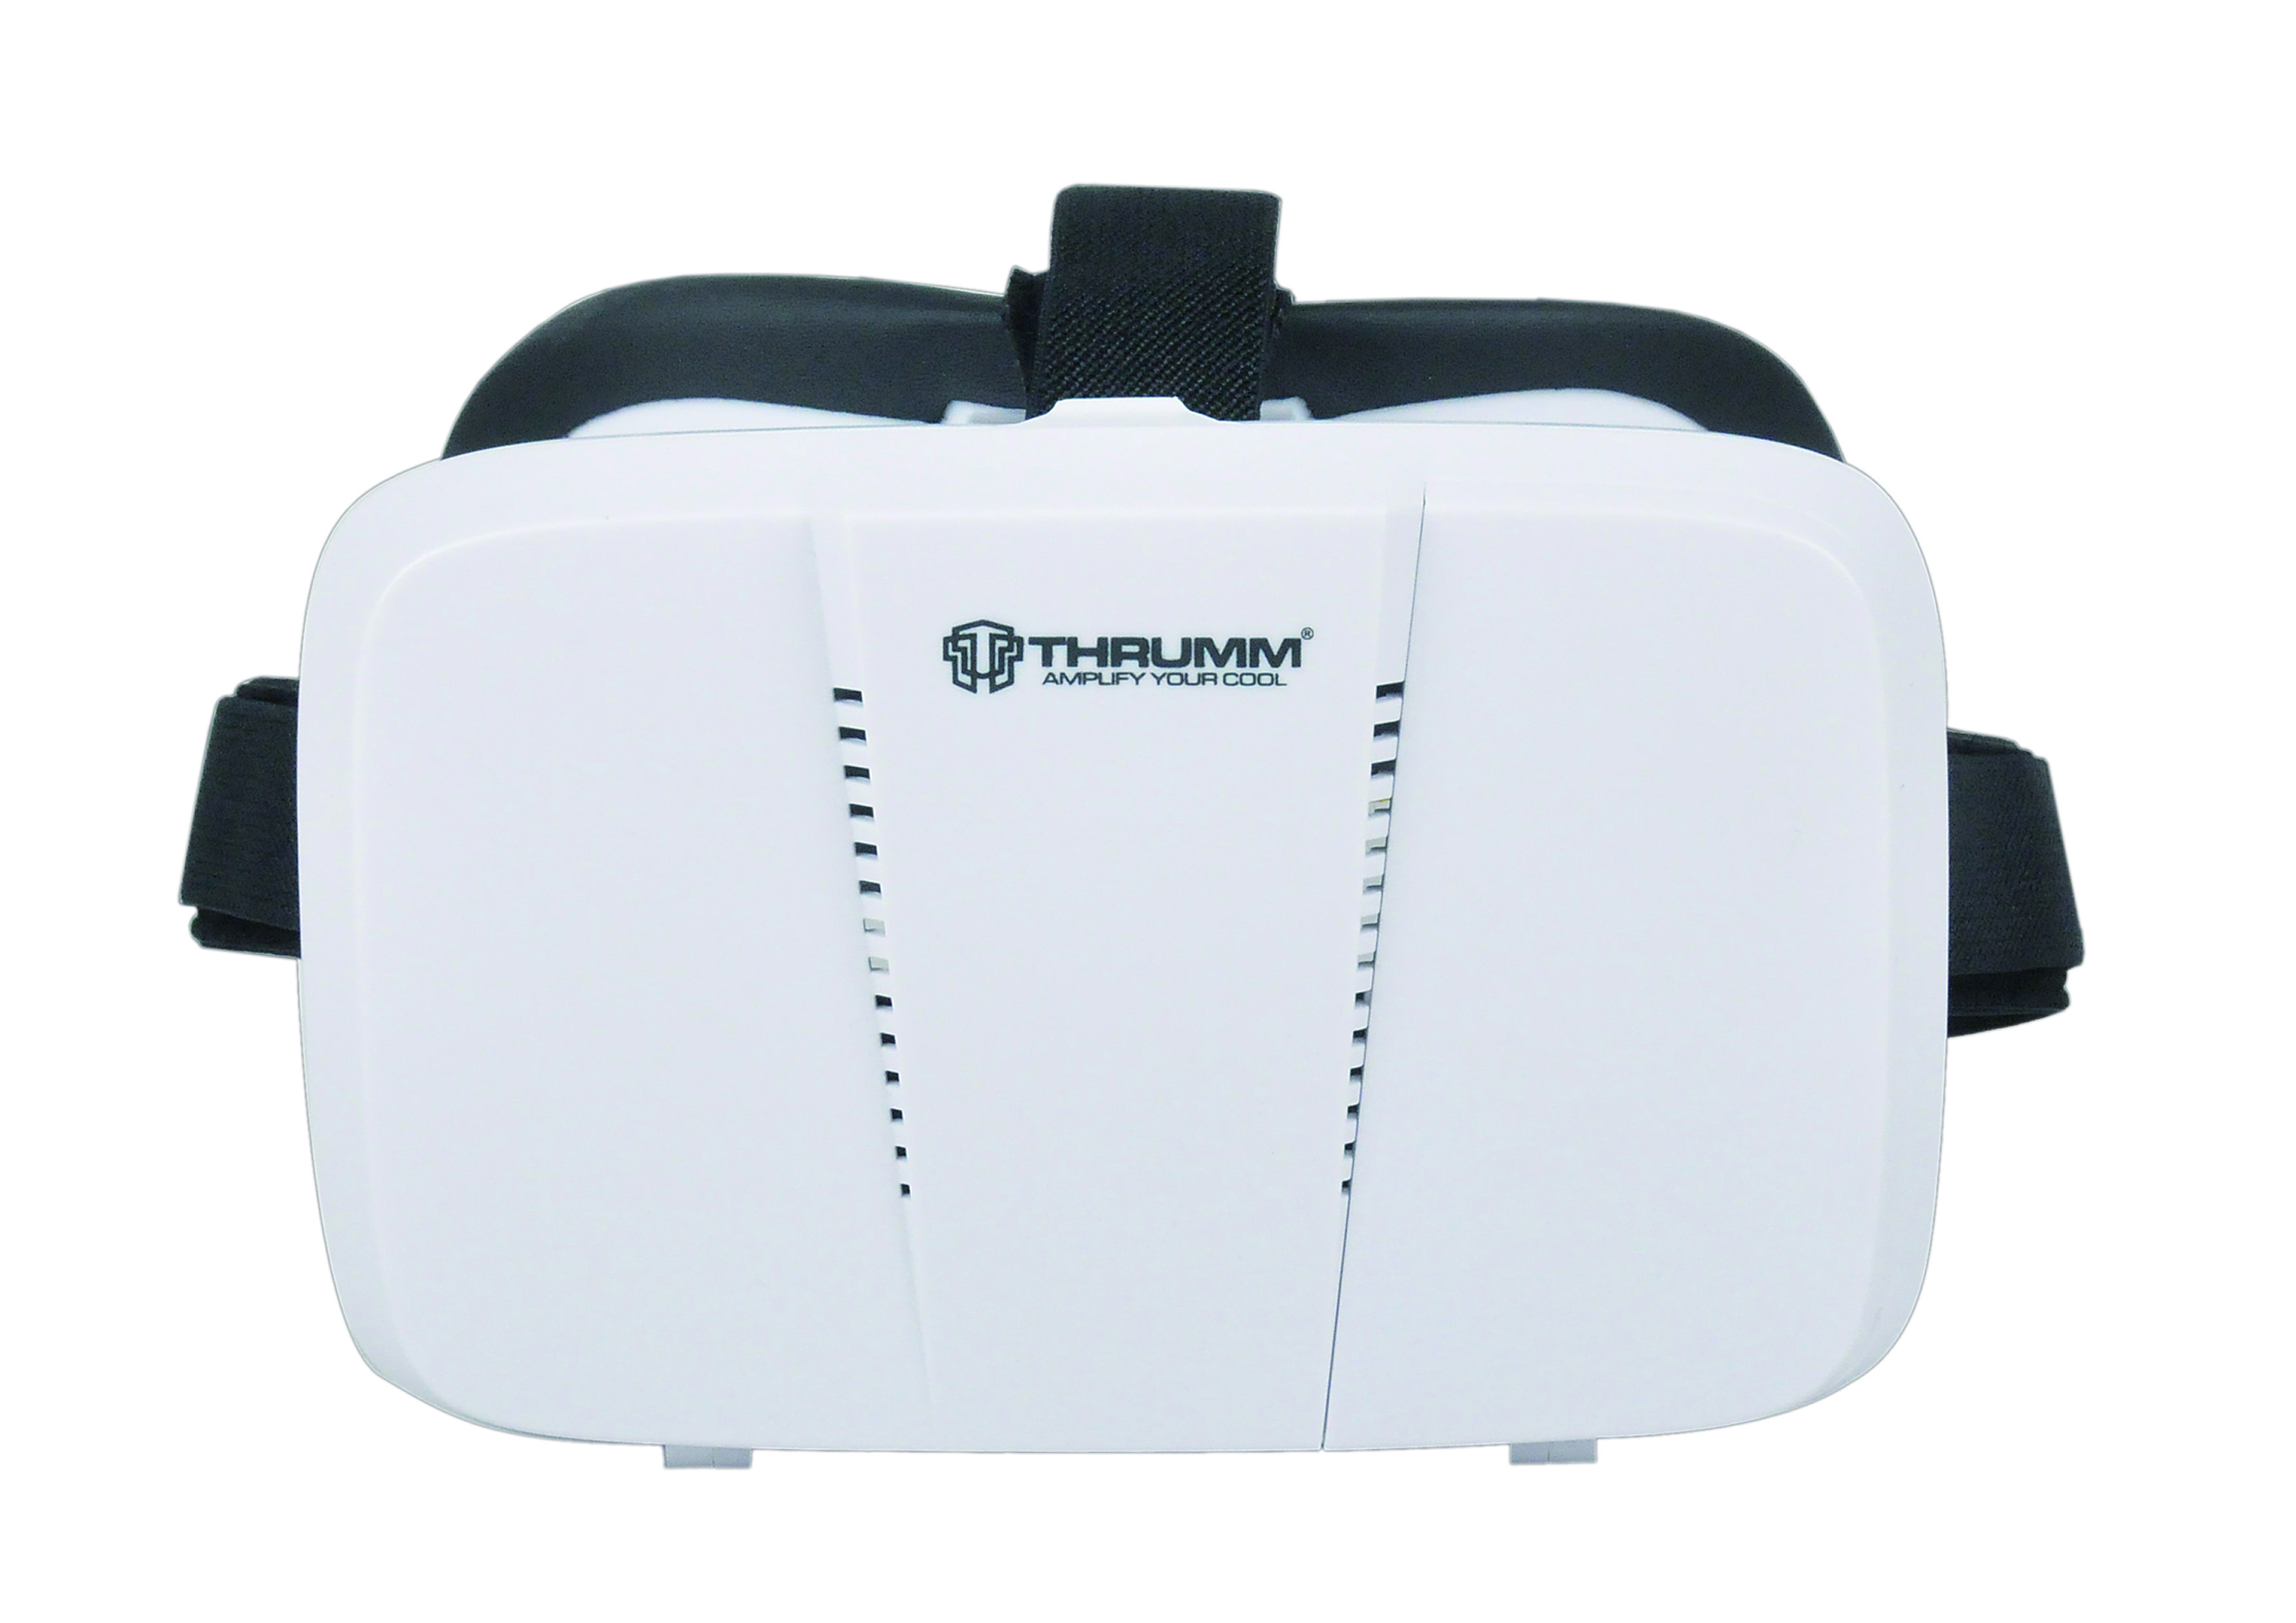 Thrumm 3d Vr Glasses Turn Your Smartphone Into A Virtual Reality